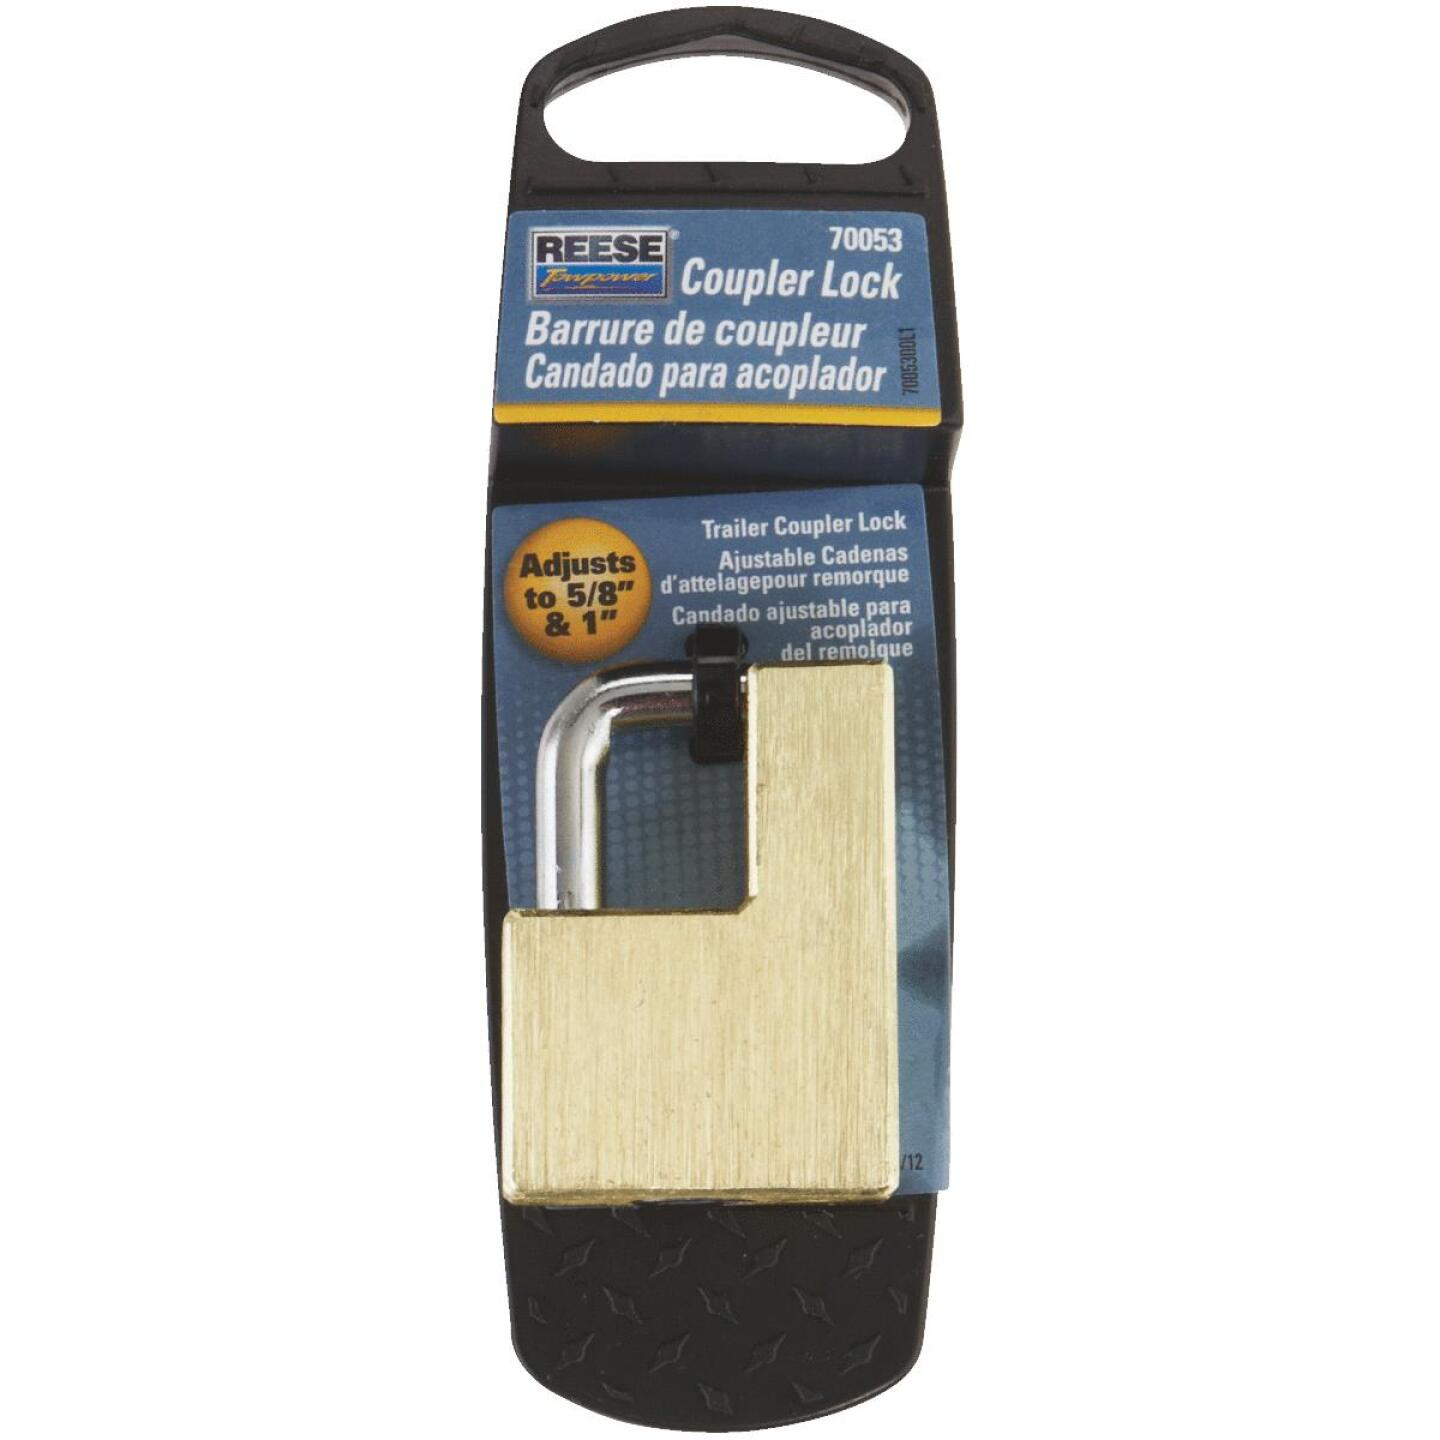 Reese Towpower Brass Adjusts 5/8 In. to 1 In. Latch Coupler Lock Image 1